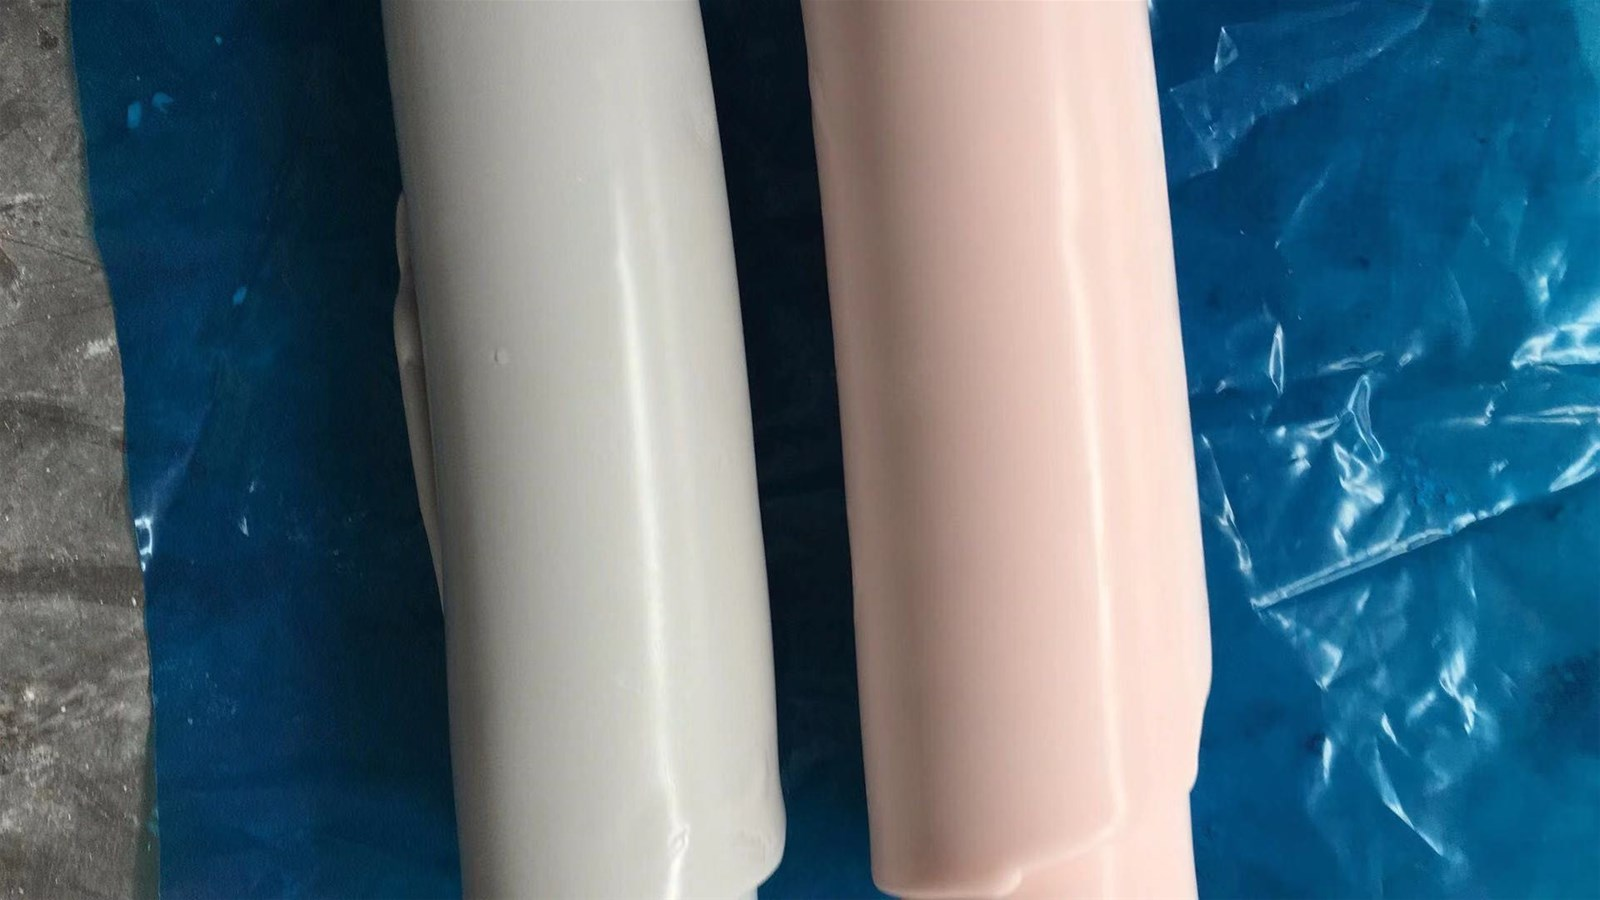 Supply silicone rubber materials for molding and extrusion products